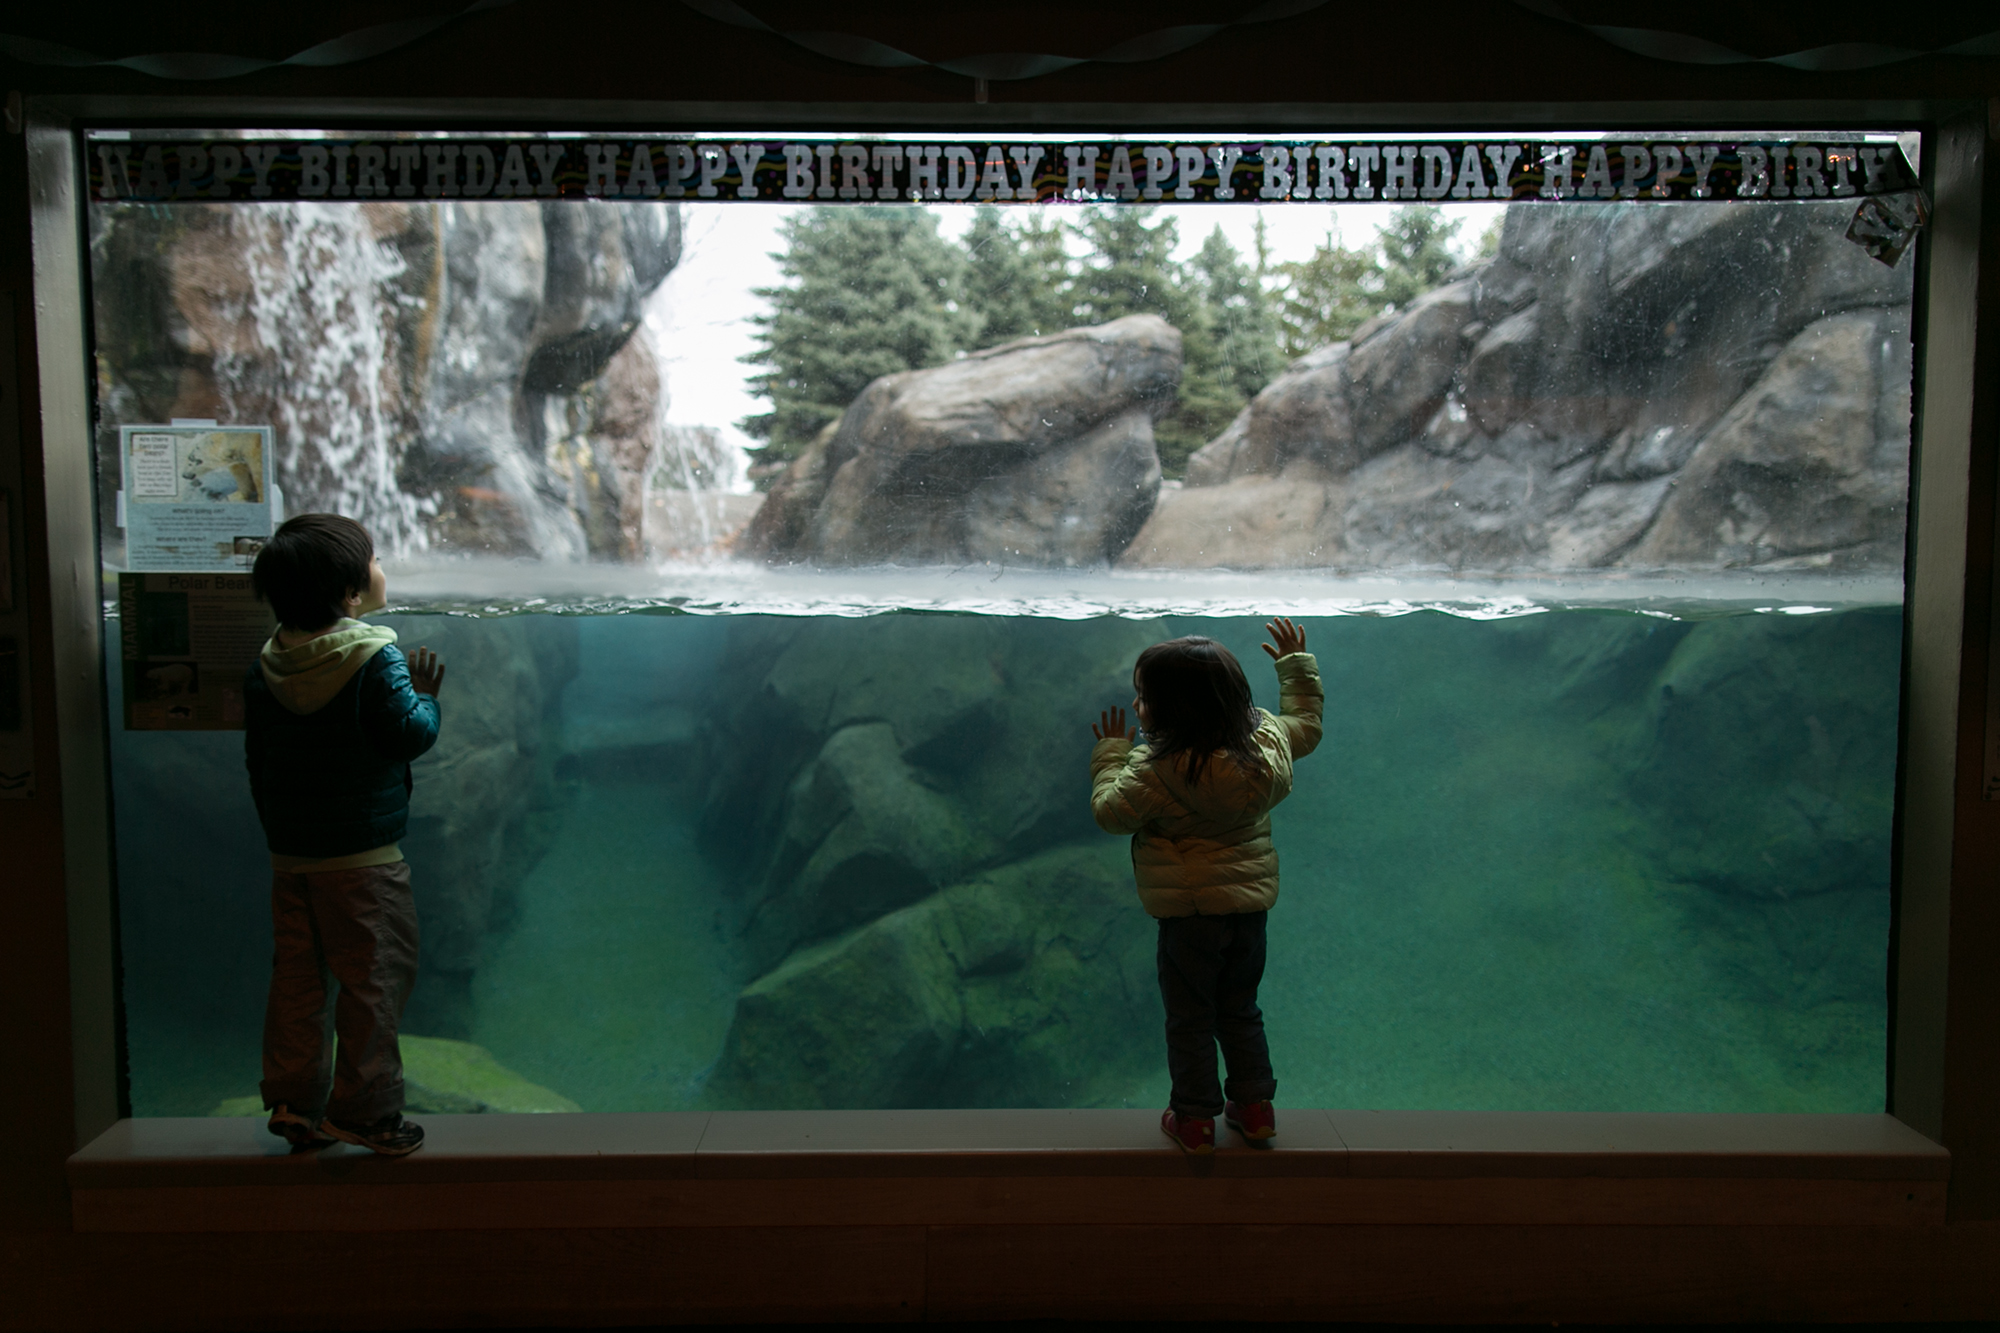 Shoei Kurogi, 5, and Karina Kurogi, 3, of Webster, try to get a better view of the polar bears at Seneca Park Zoo in Rochester on Saturday, November 1, 2014. The zoo was hosting a birthday party for the bears, Zero and Aurora, who both turn 25 this month.